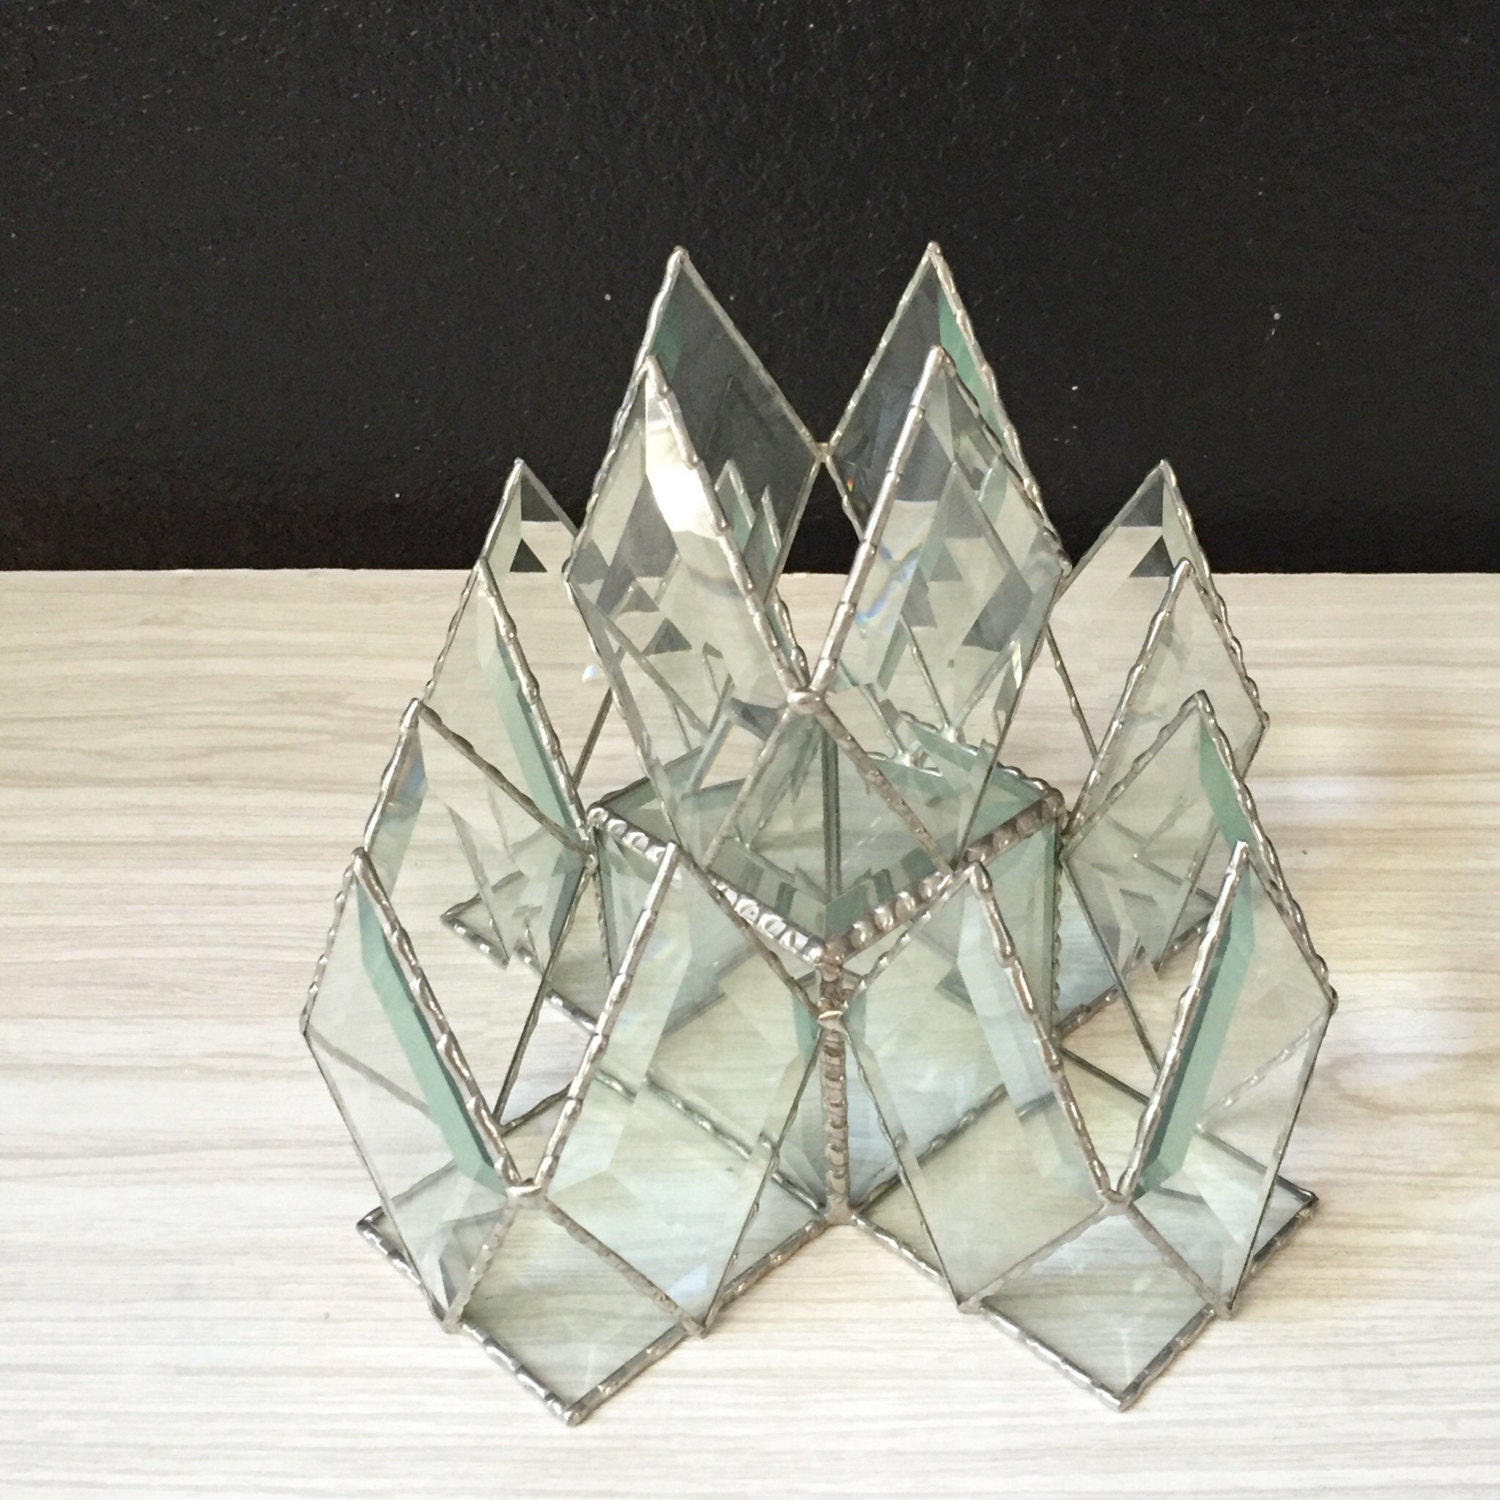 Large vintage beveled geometric glass box sculpture